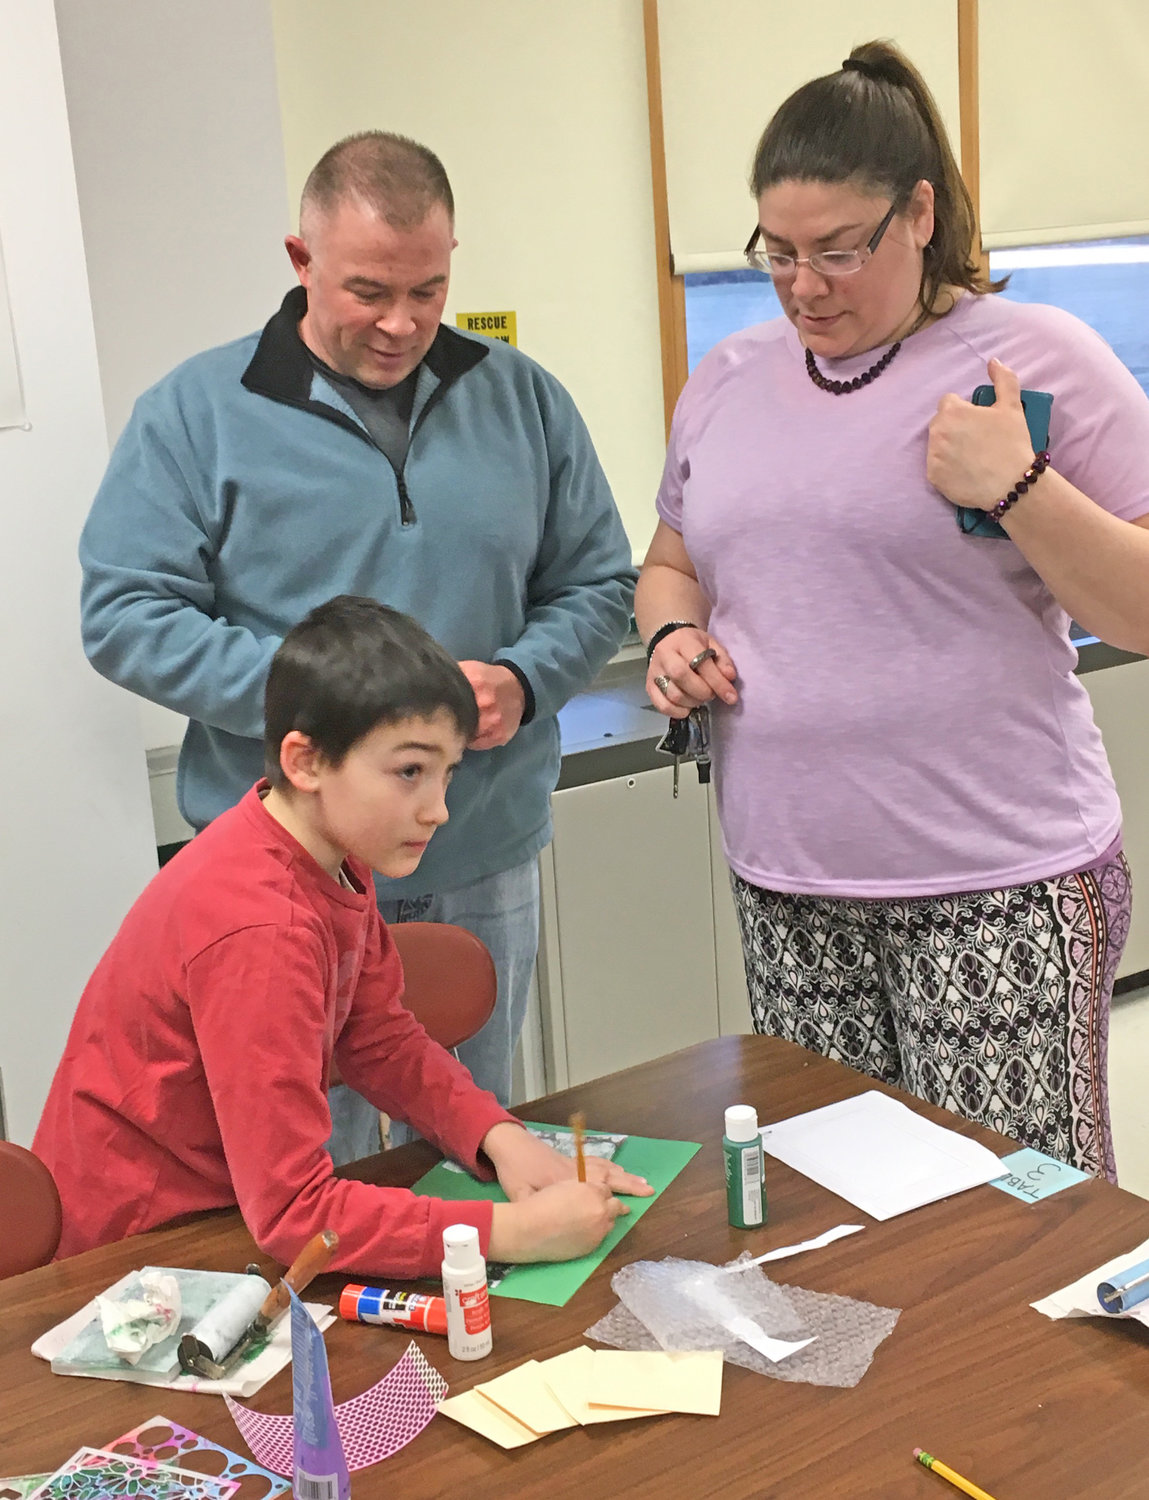 FAMILY FUN — Jim and Angela Hayes, along with son Keegan, third grade, learn the art of printmaking together at Westmoreland Upper Elementary School's XI3 STEAM Adventure Night.